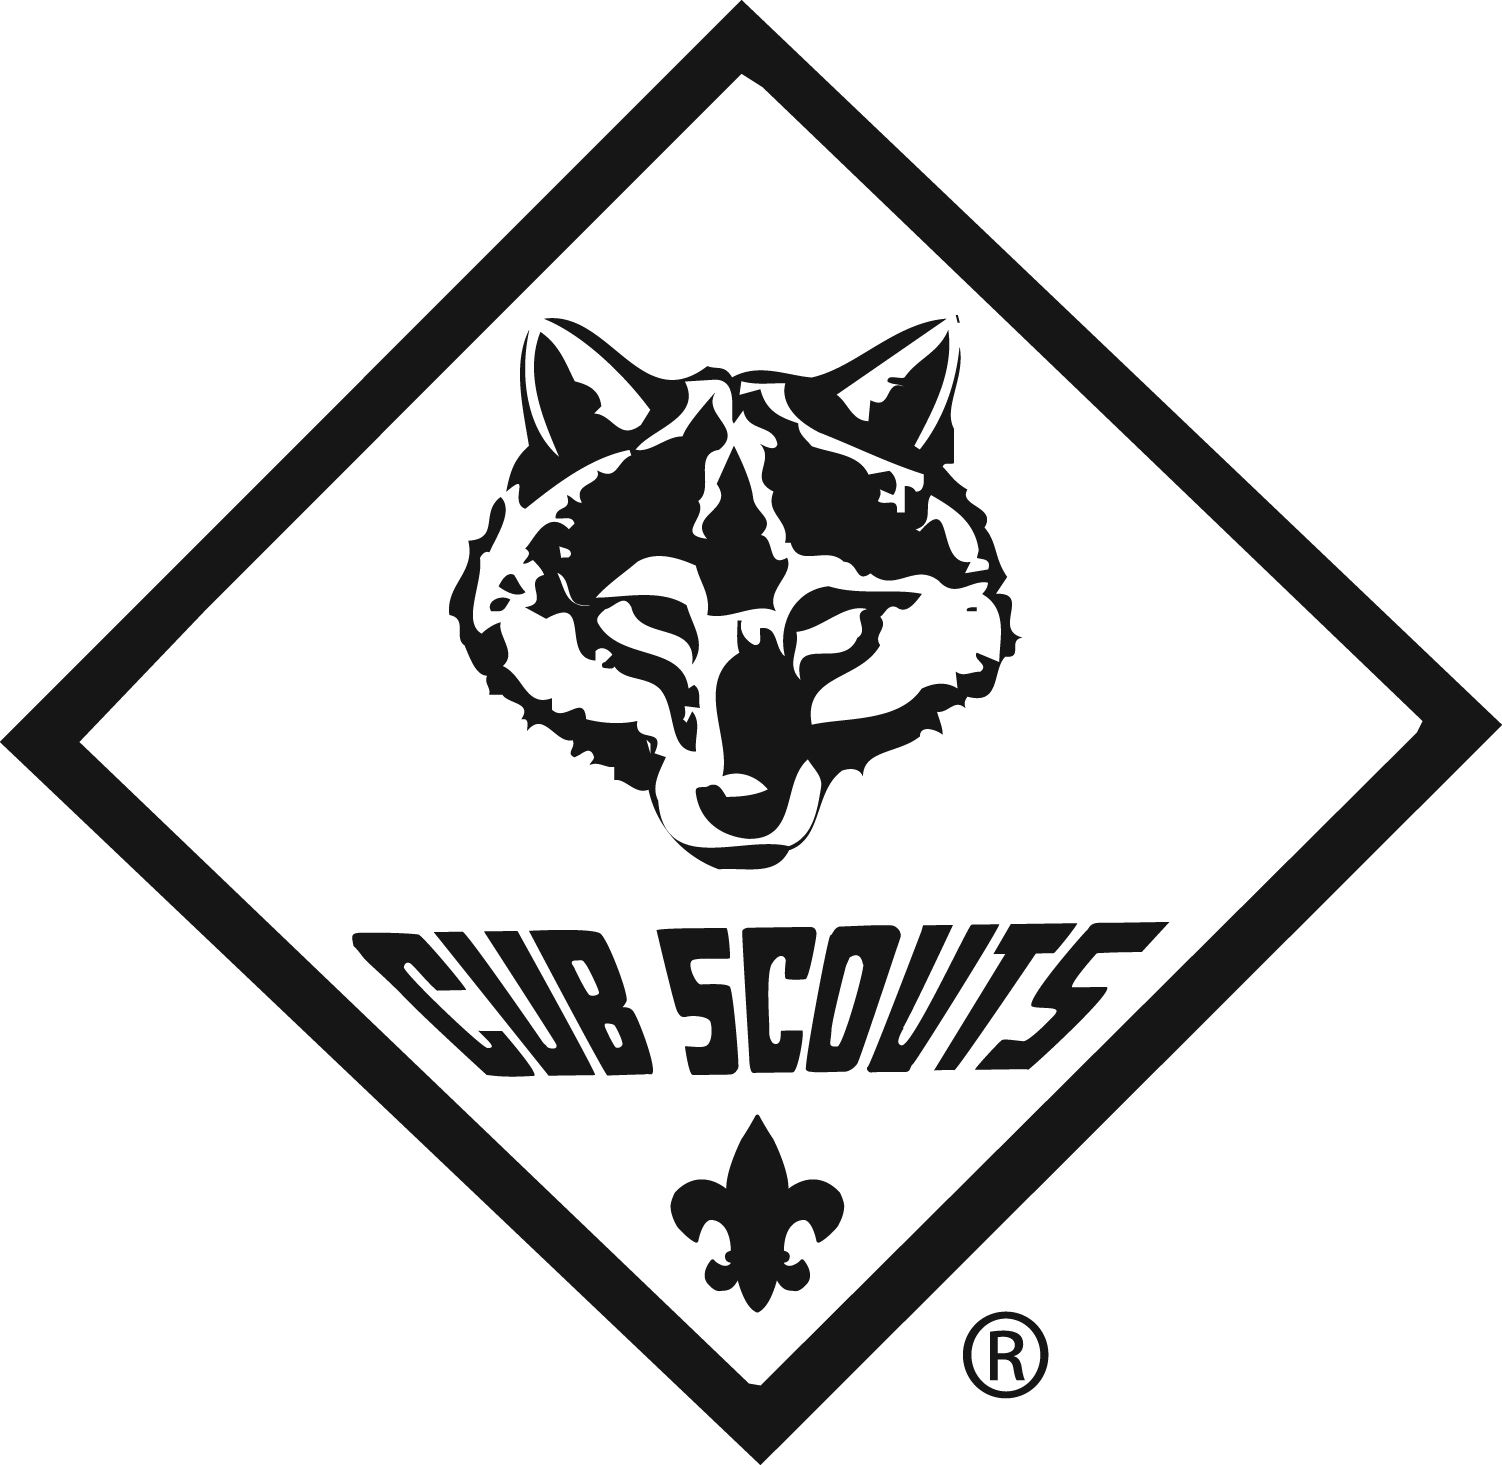 New Cub Scout Program Images